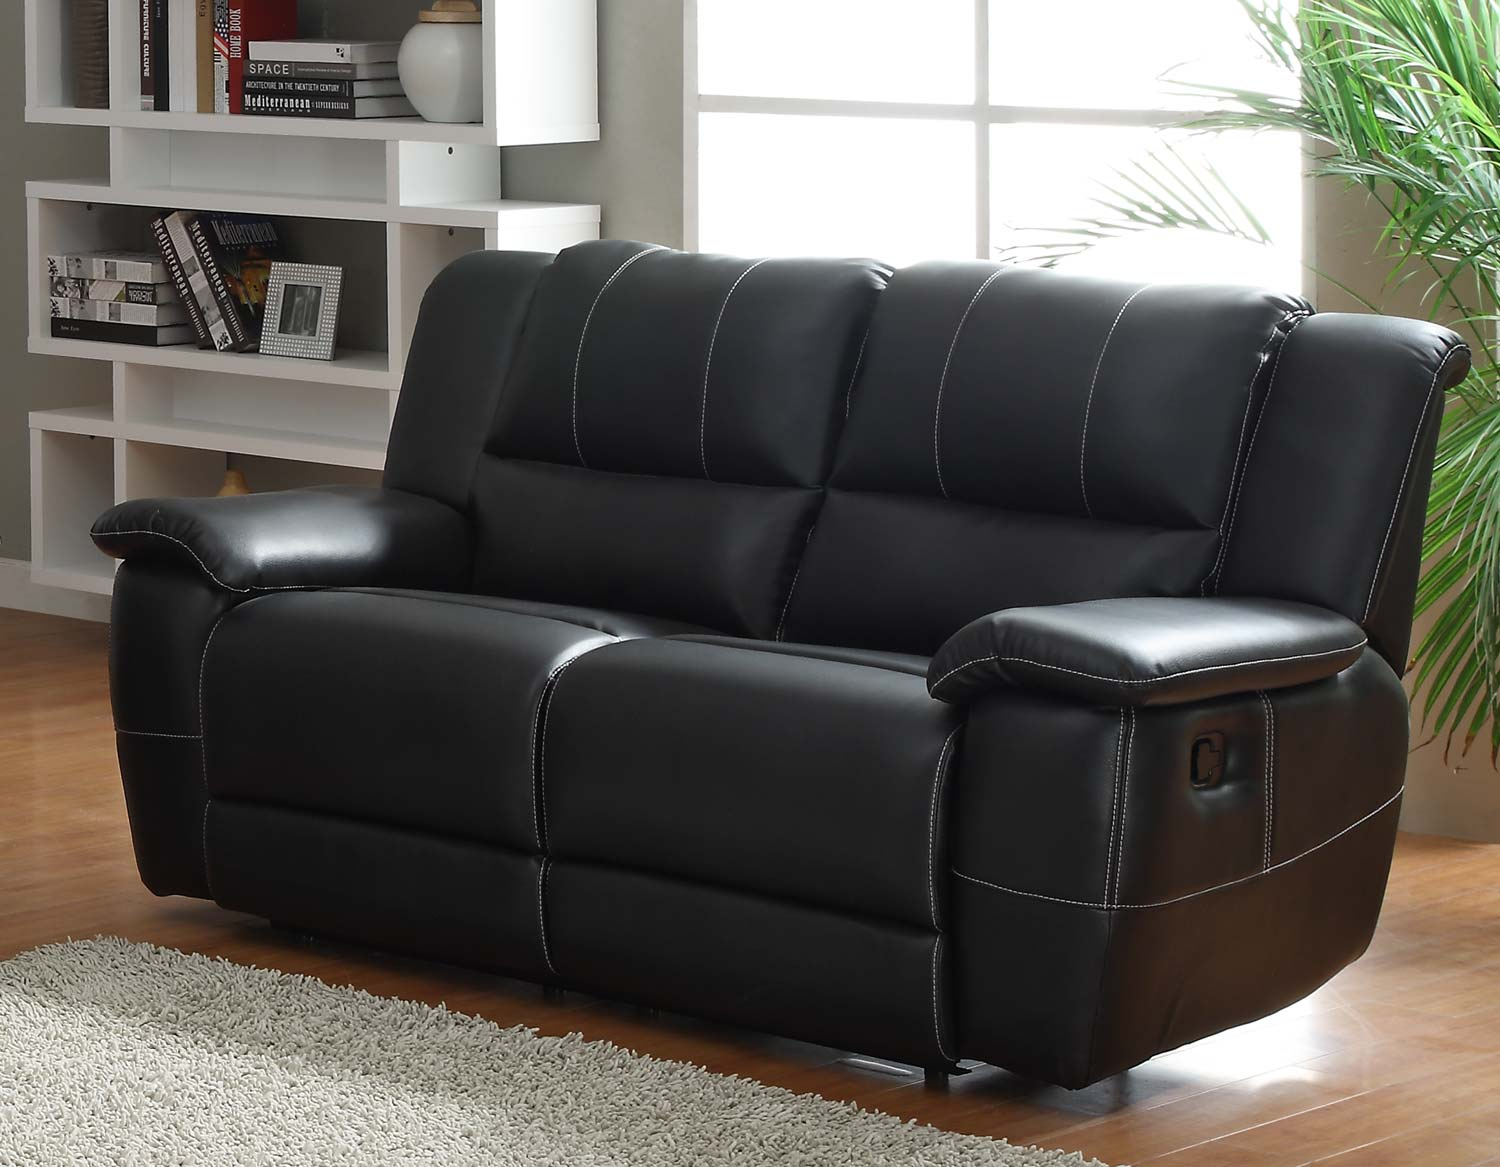 Homelegance cantrell reclining sofa set black bonded leather match u9778blk 3 at Leather reclining sofa loveseat